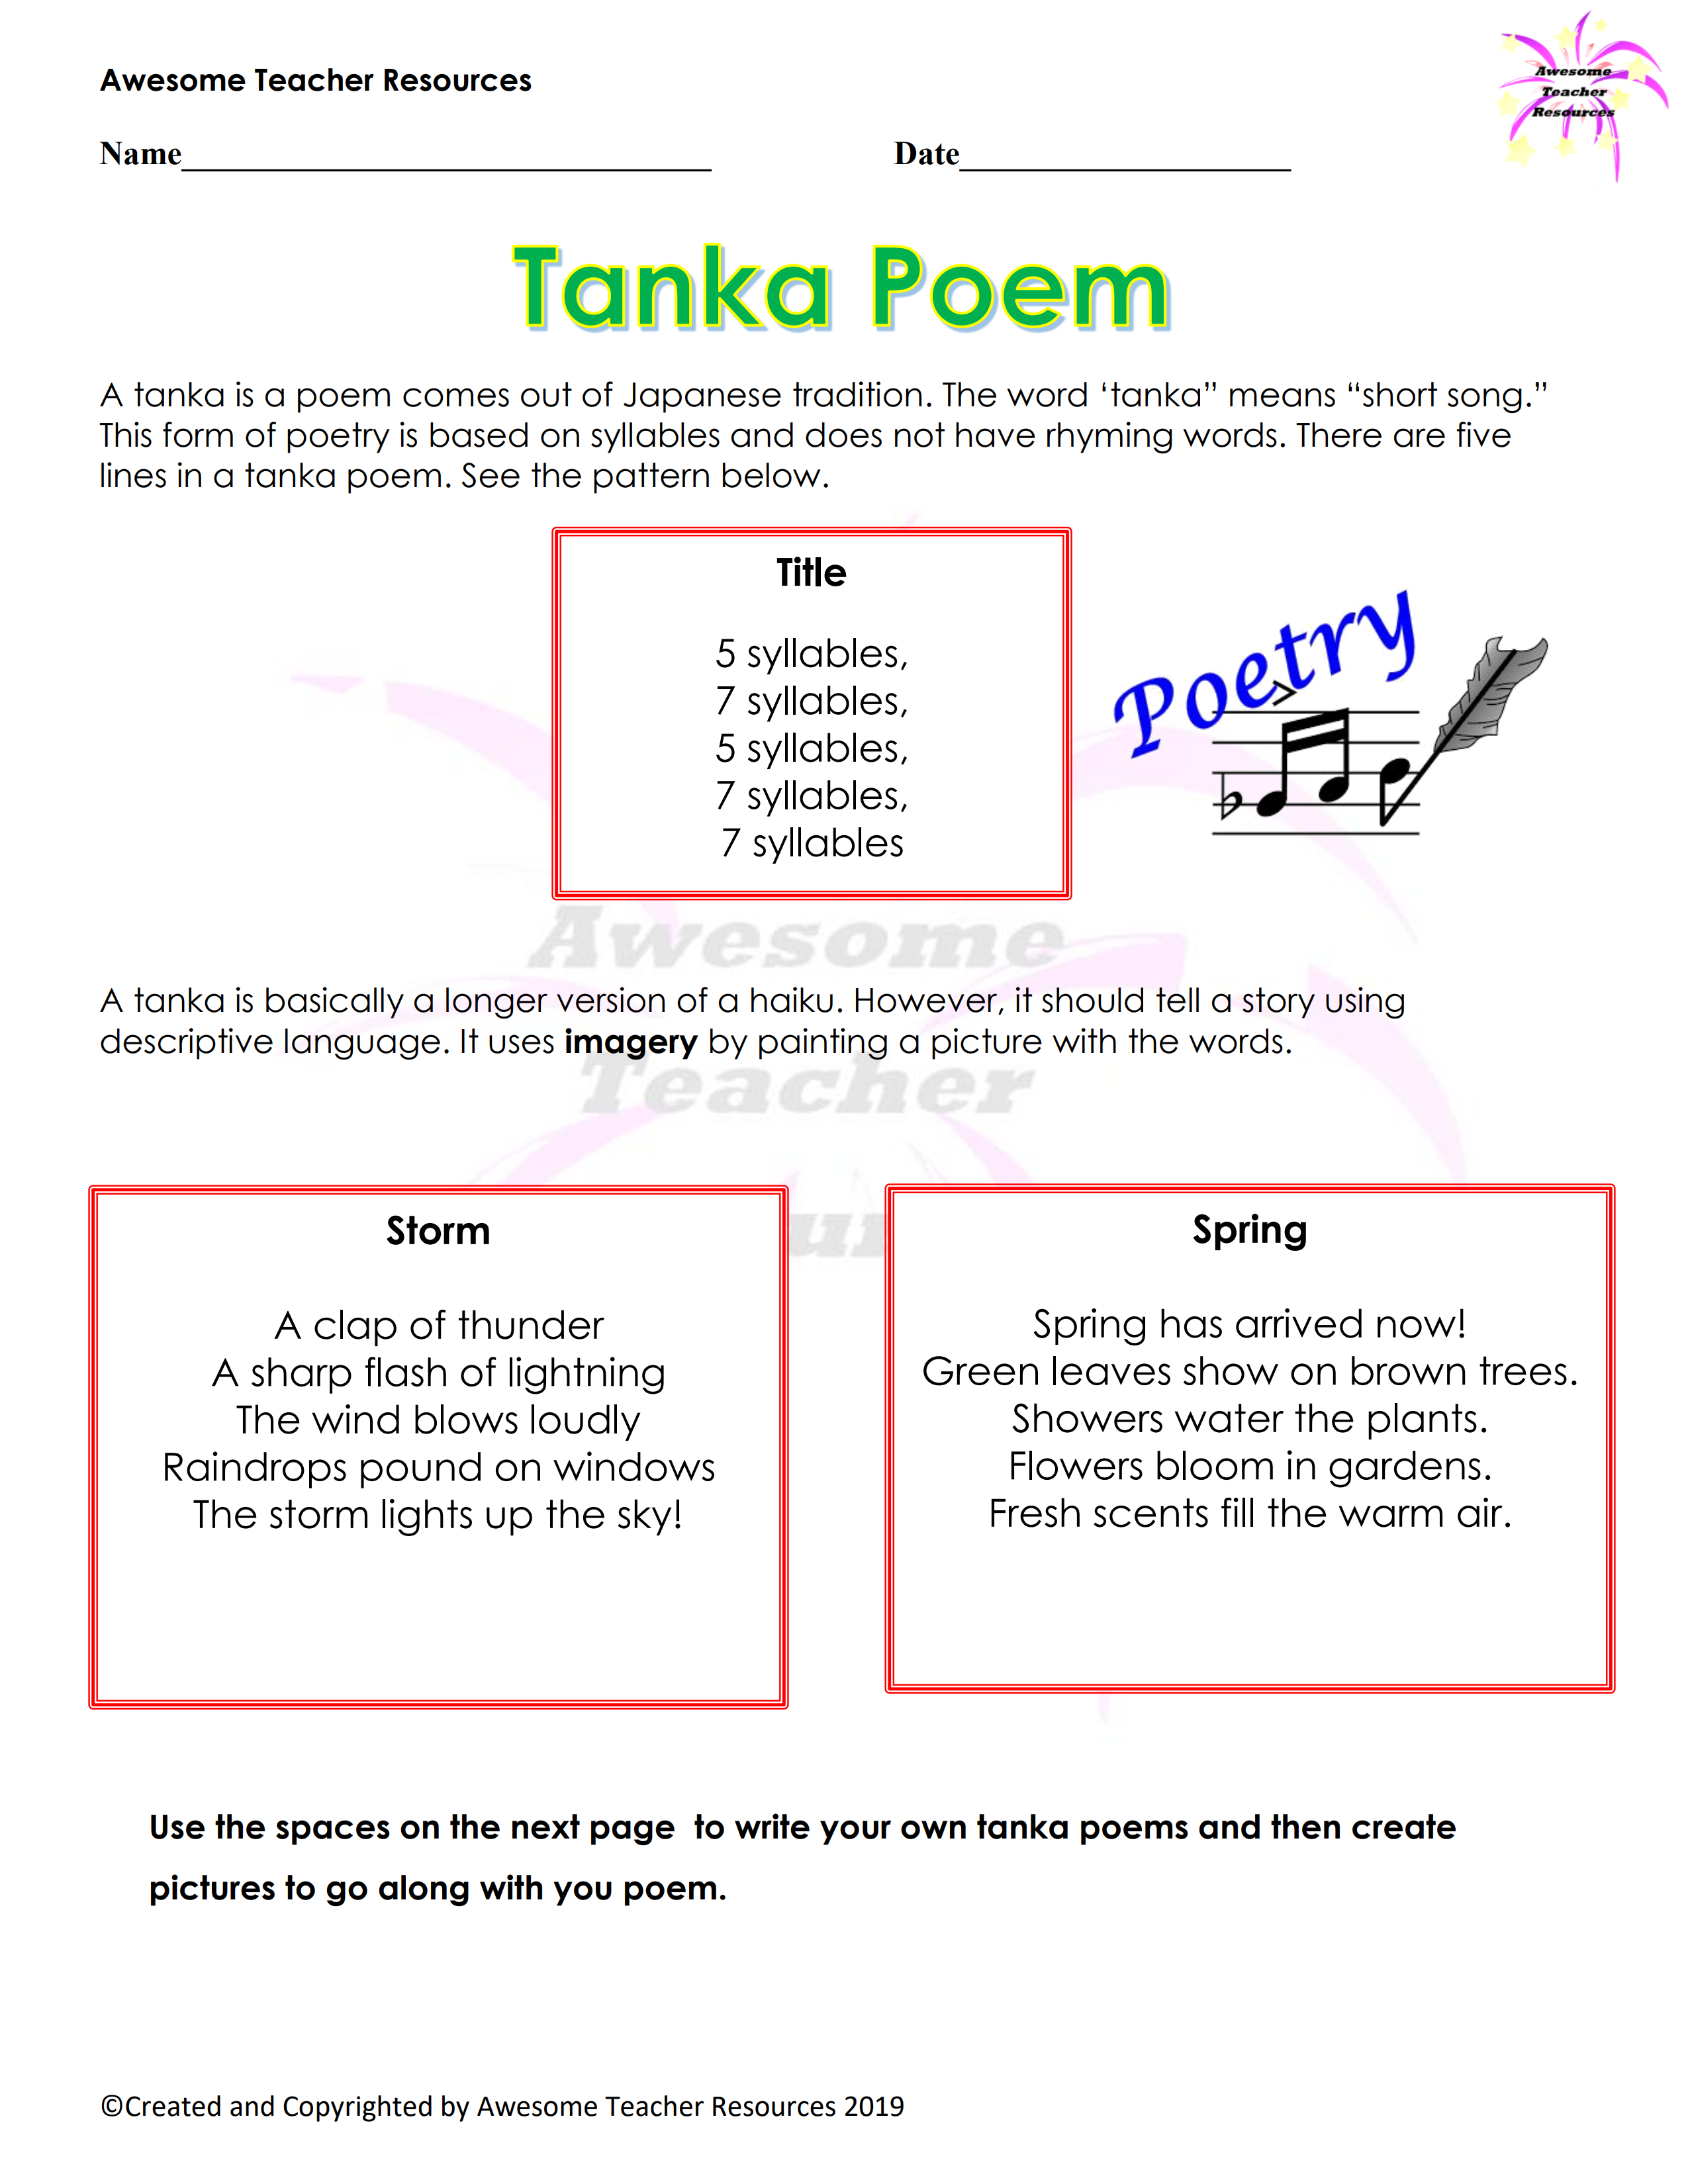 Tanka Poem Worksheet In